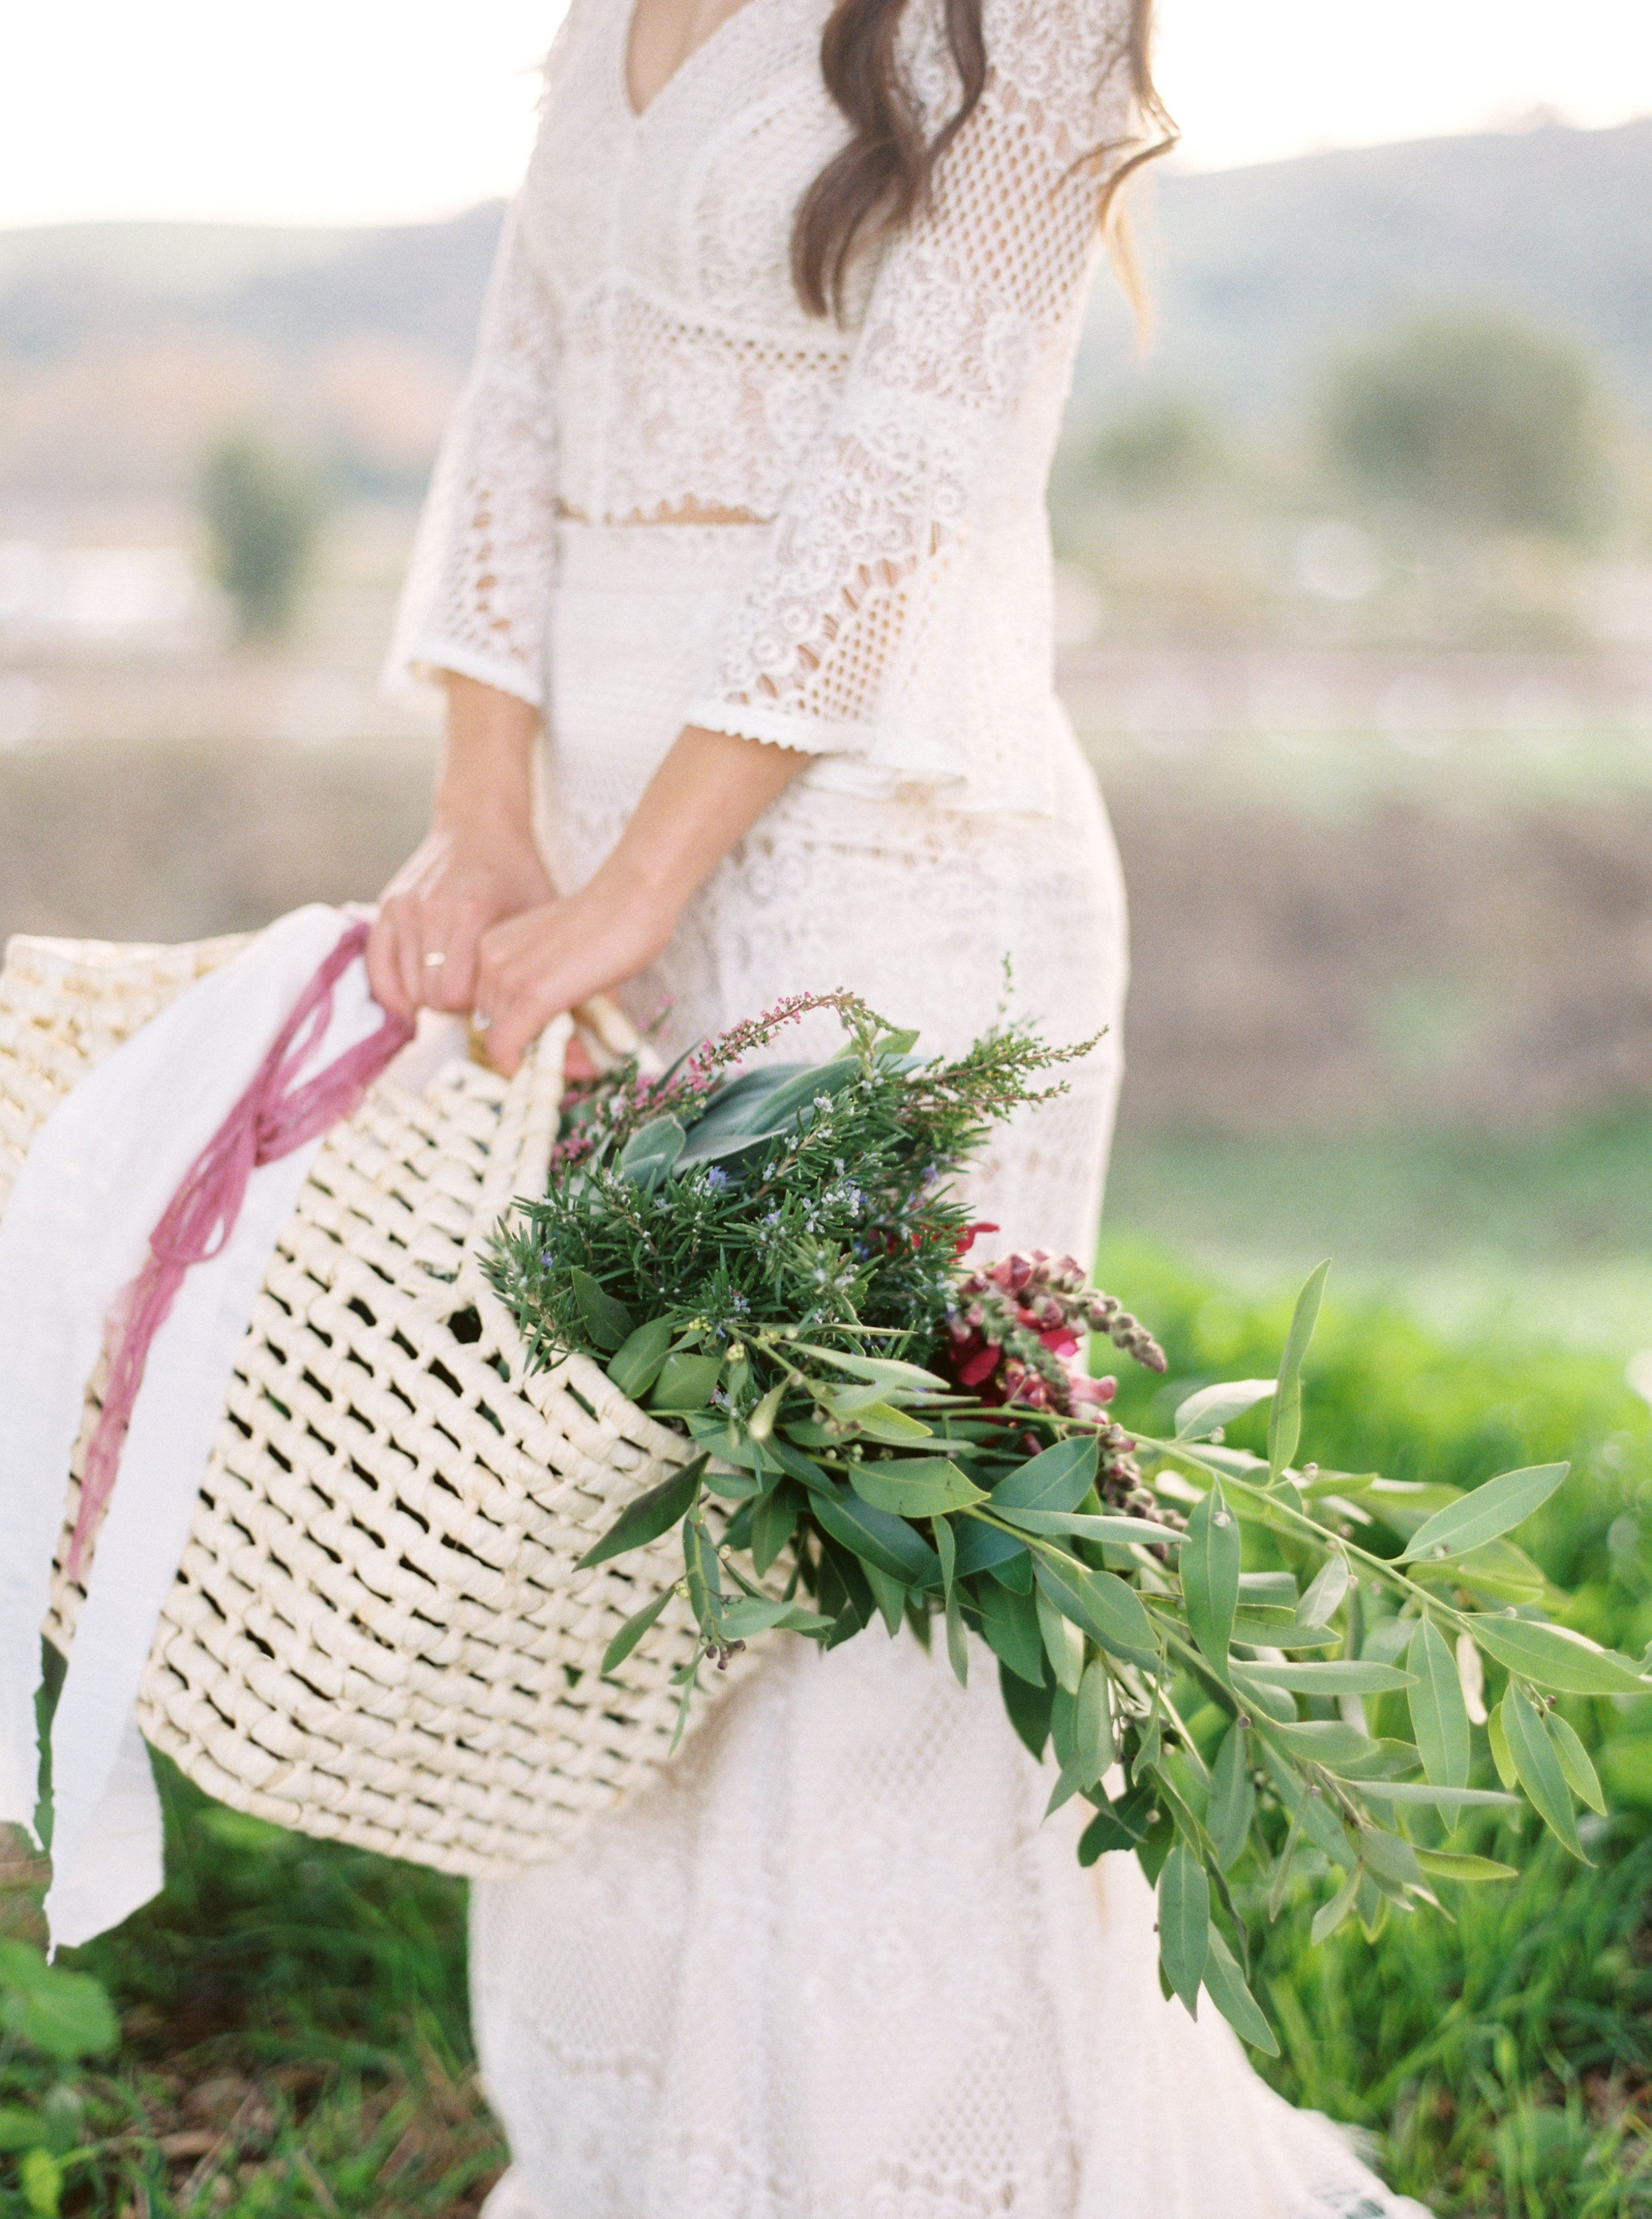 boho-inspired-wedding-at-casa-bella-in-sunol-california-68.jpg